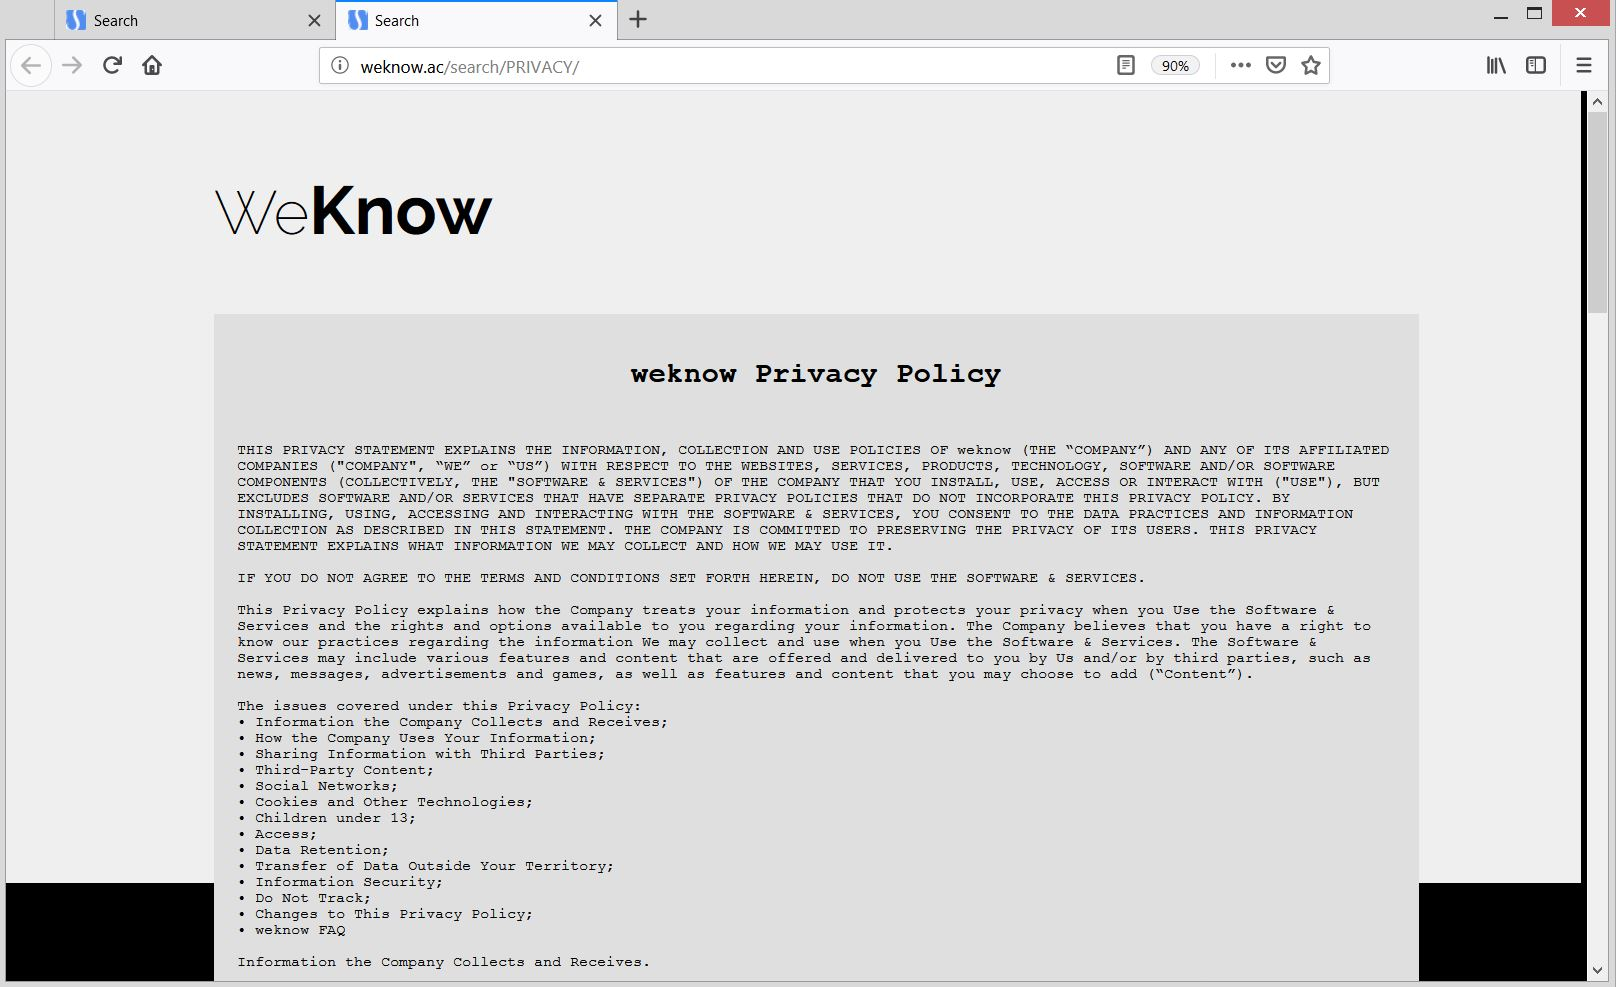 weknow.ac browser hijacker privacy policy sensorstechforum removal guide